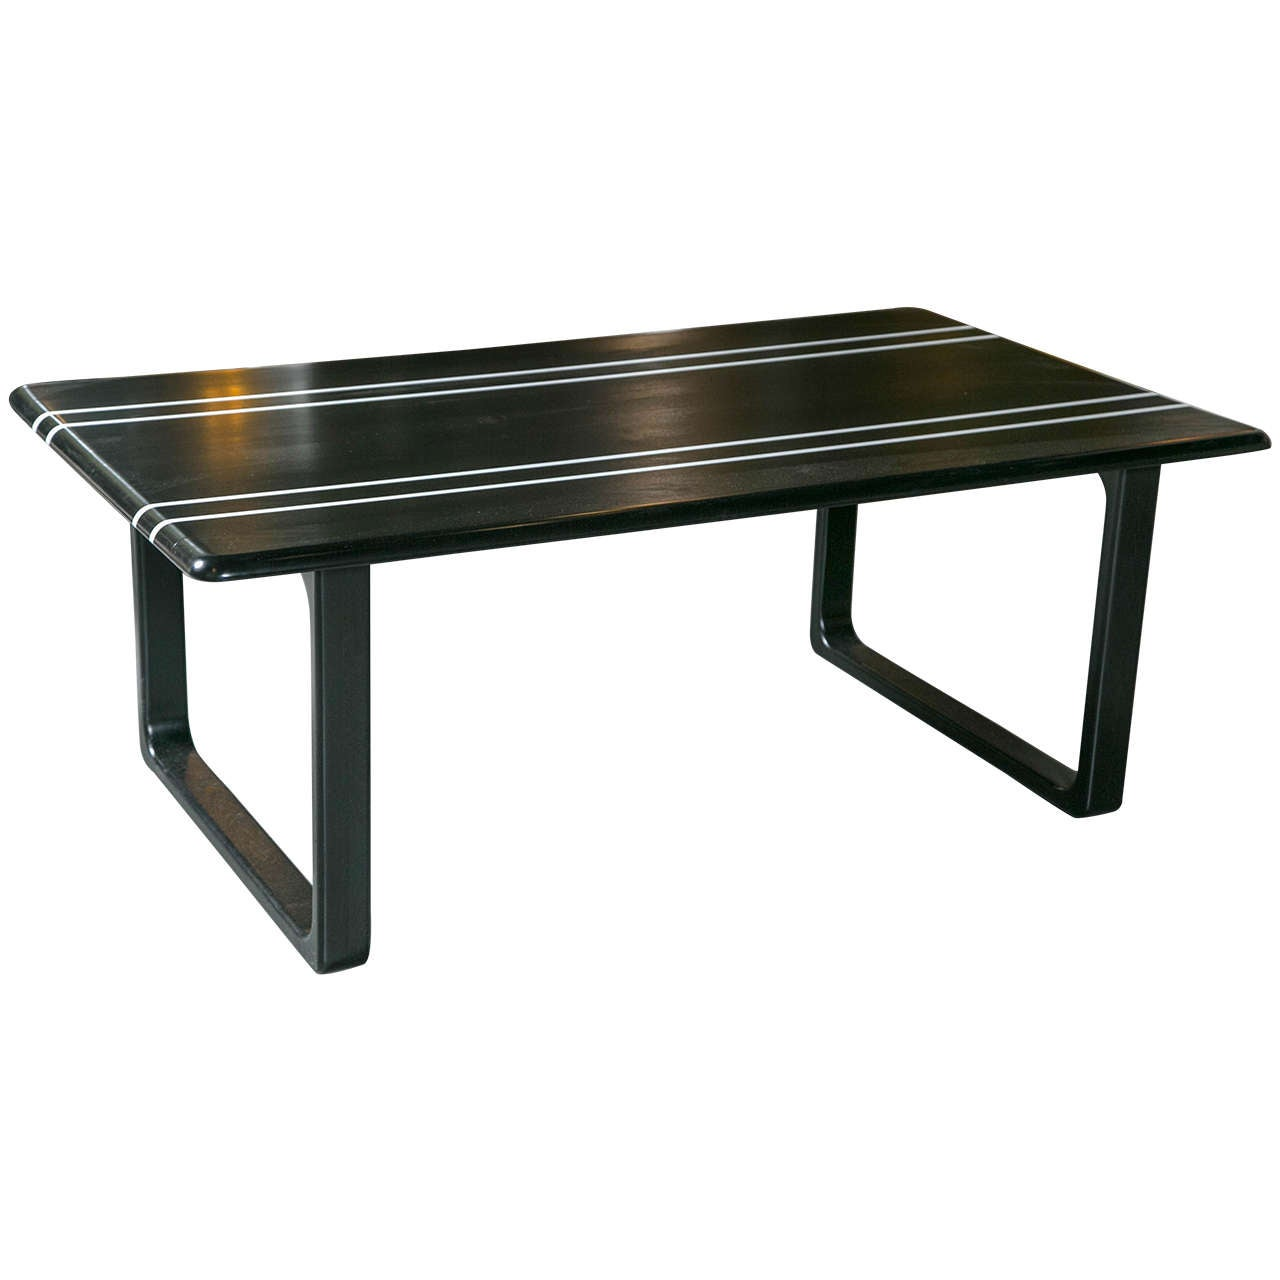 Black Coffee Table For Sale Black And White Lacquered Coffee Table For Sale At 1stdibs